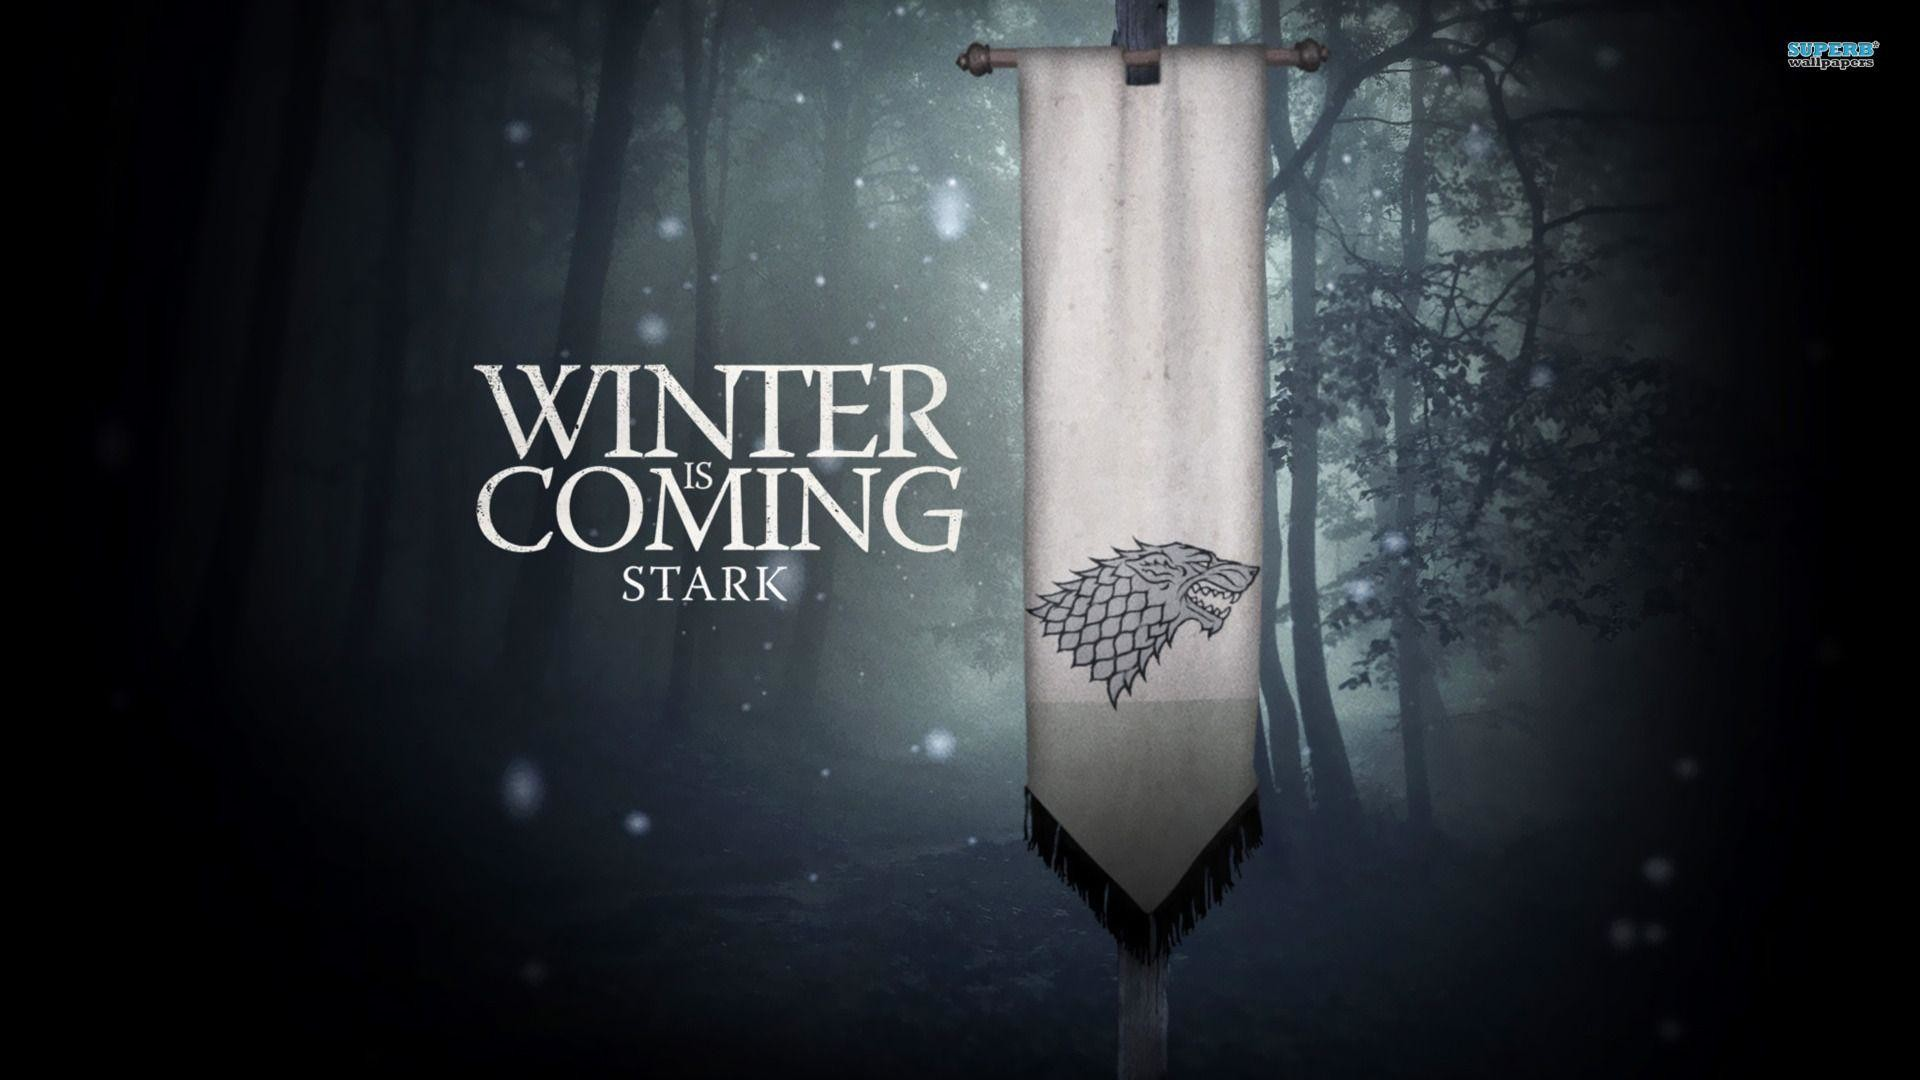 Winter Is Coming Wallpaper Px - Winter Is Coming Wallpaper Hd , HD Wallpaper & Backgrounds